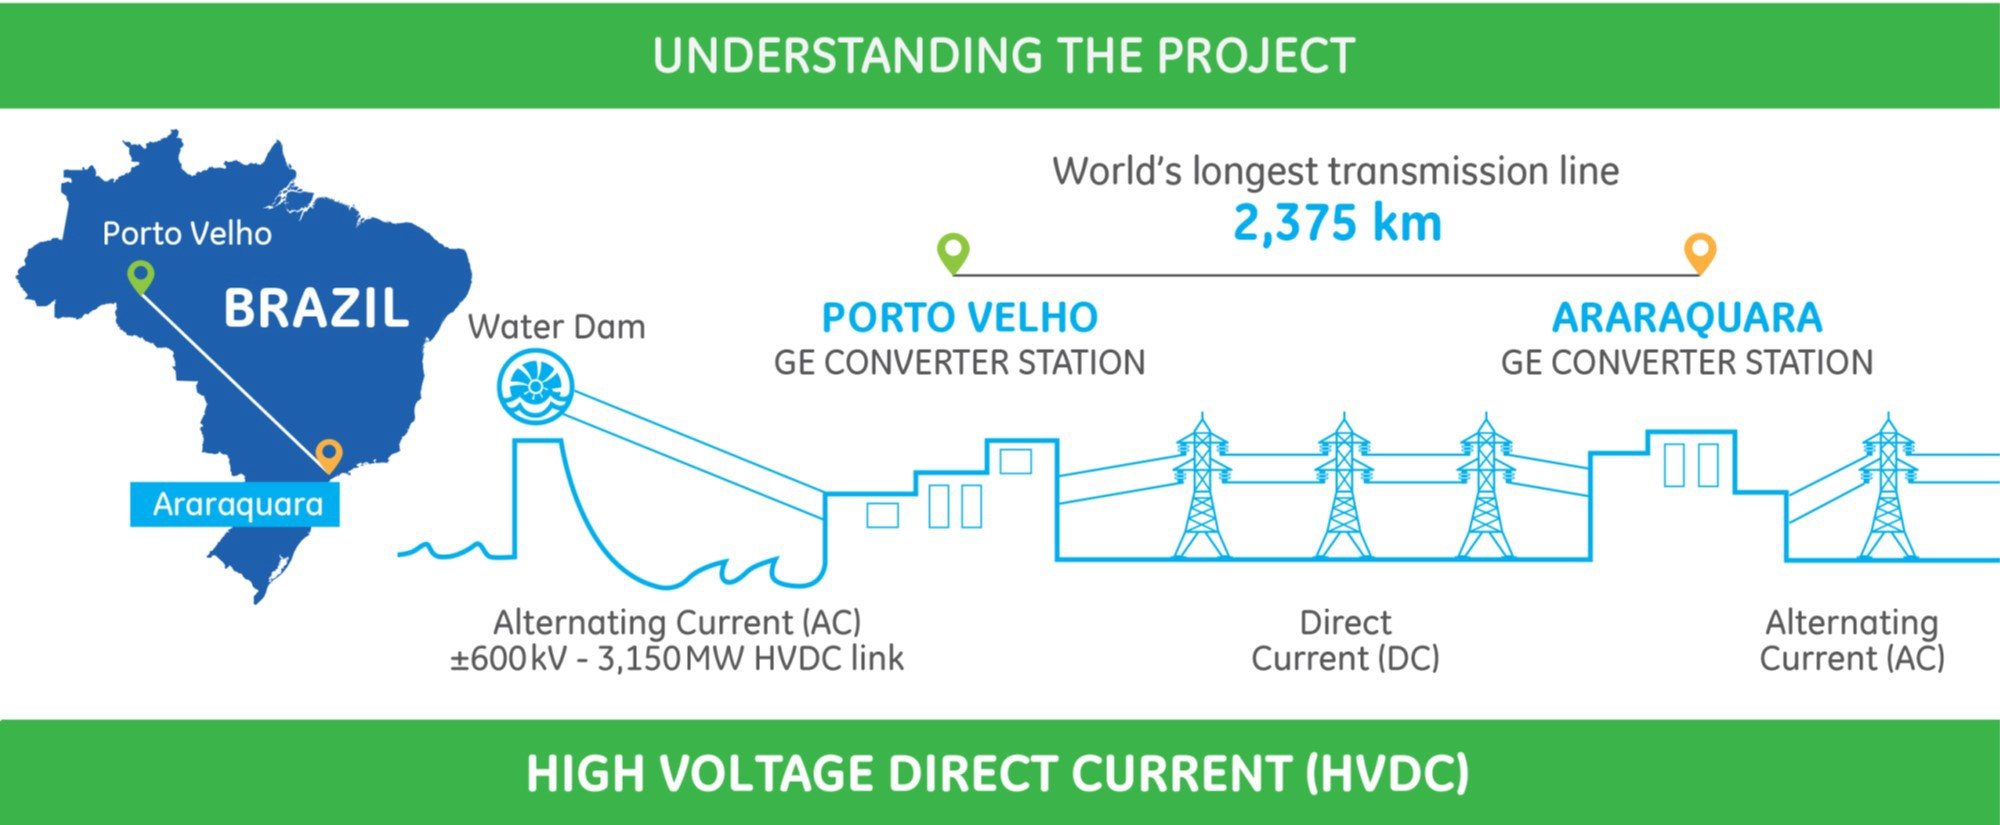 Energy Everywhere See How Ge Solutions Are Making Large Works Of Alternating Current Diagram And Direct To This End Has Strategically Positioned Two Complete Hvdc Converters Substations One In The Amazon Region Another So Paulo